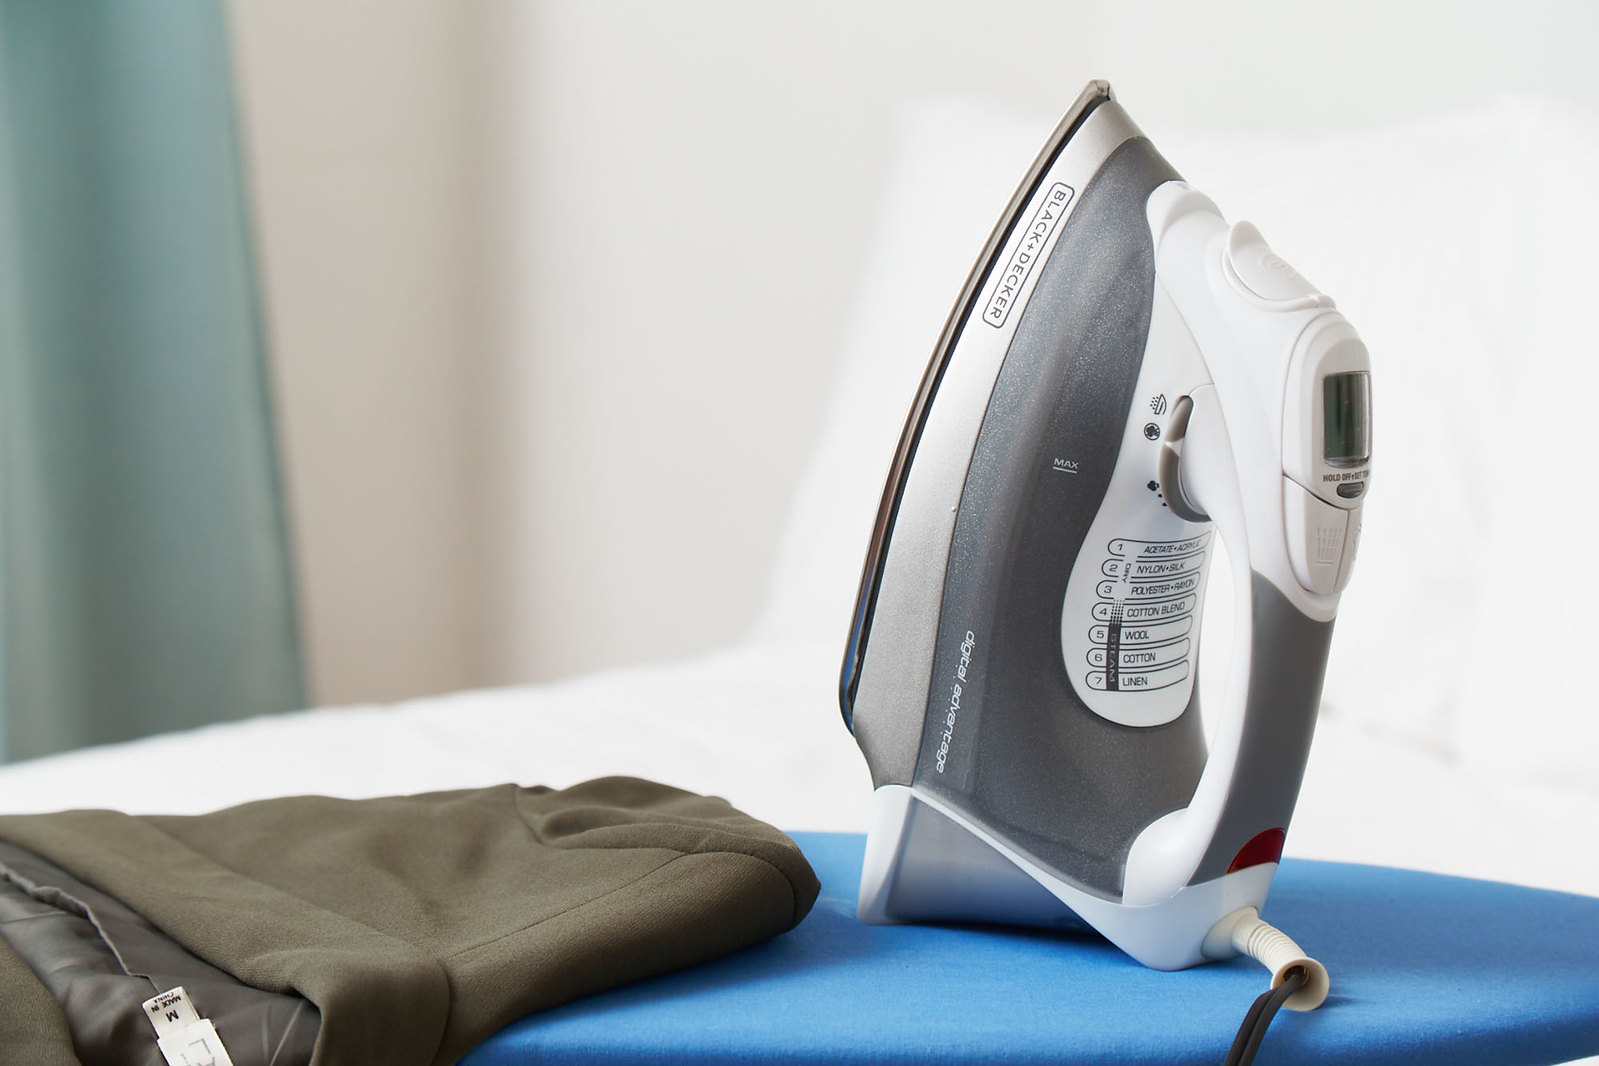 Black and Decker Corded Steam Iron by Your Best Digs via Flickr: https://www.yourbestdigs.com/reviews/best-steam-iron/